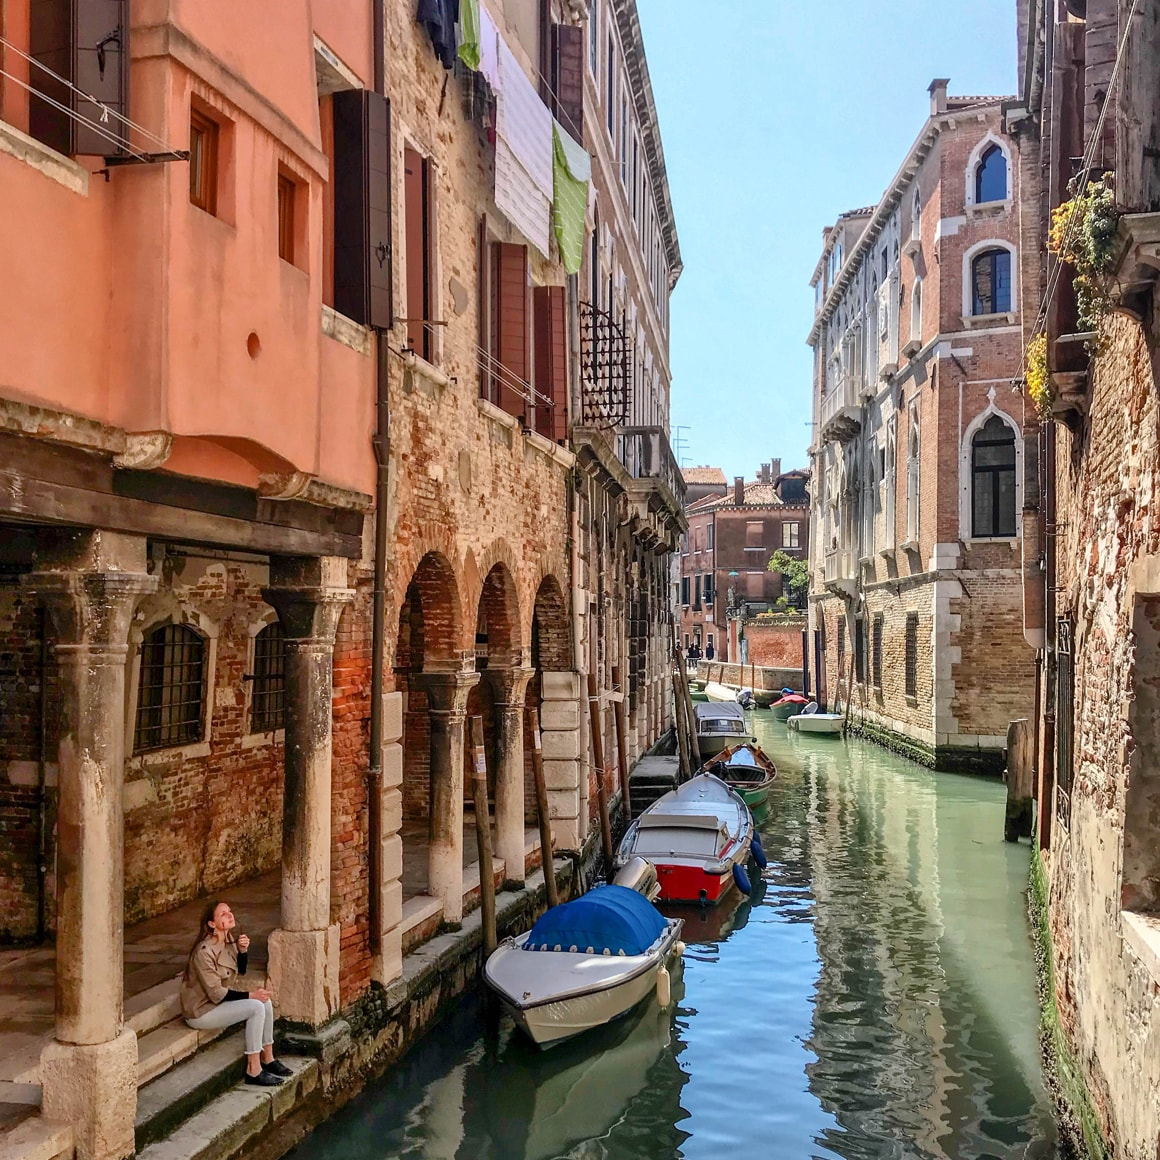 Small boats docked in a canal in Venice, Italy